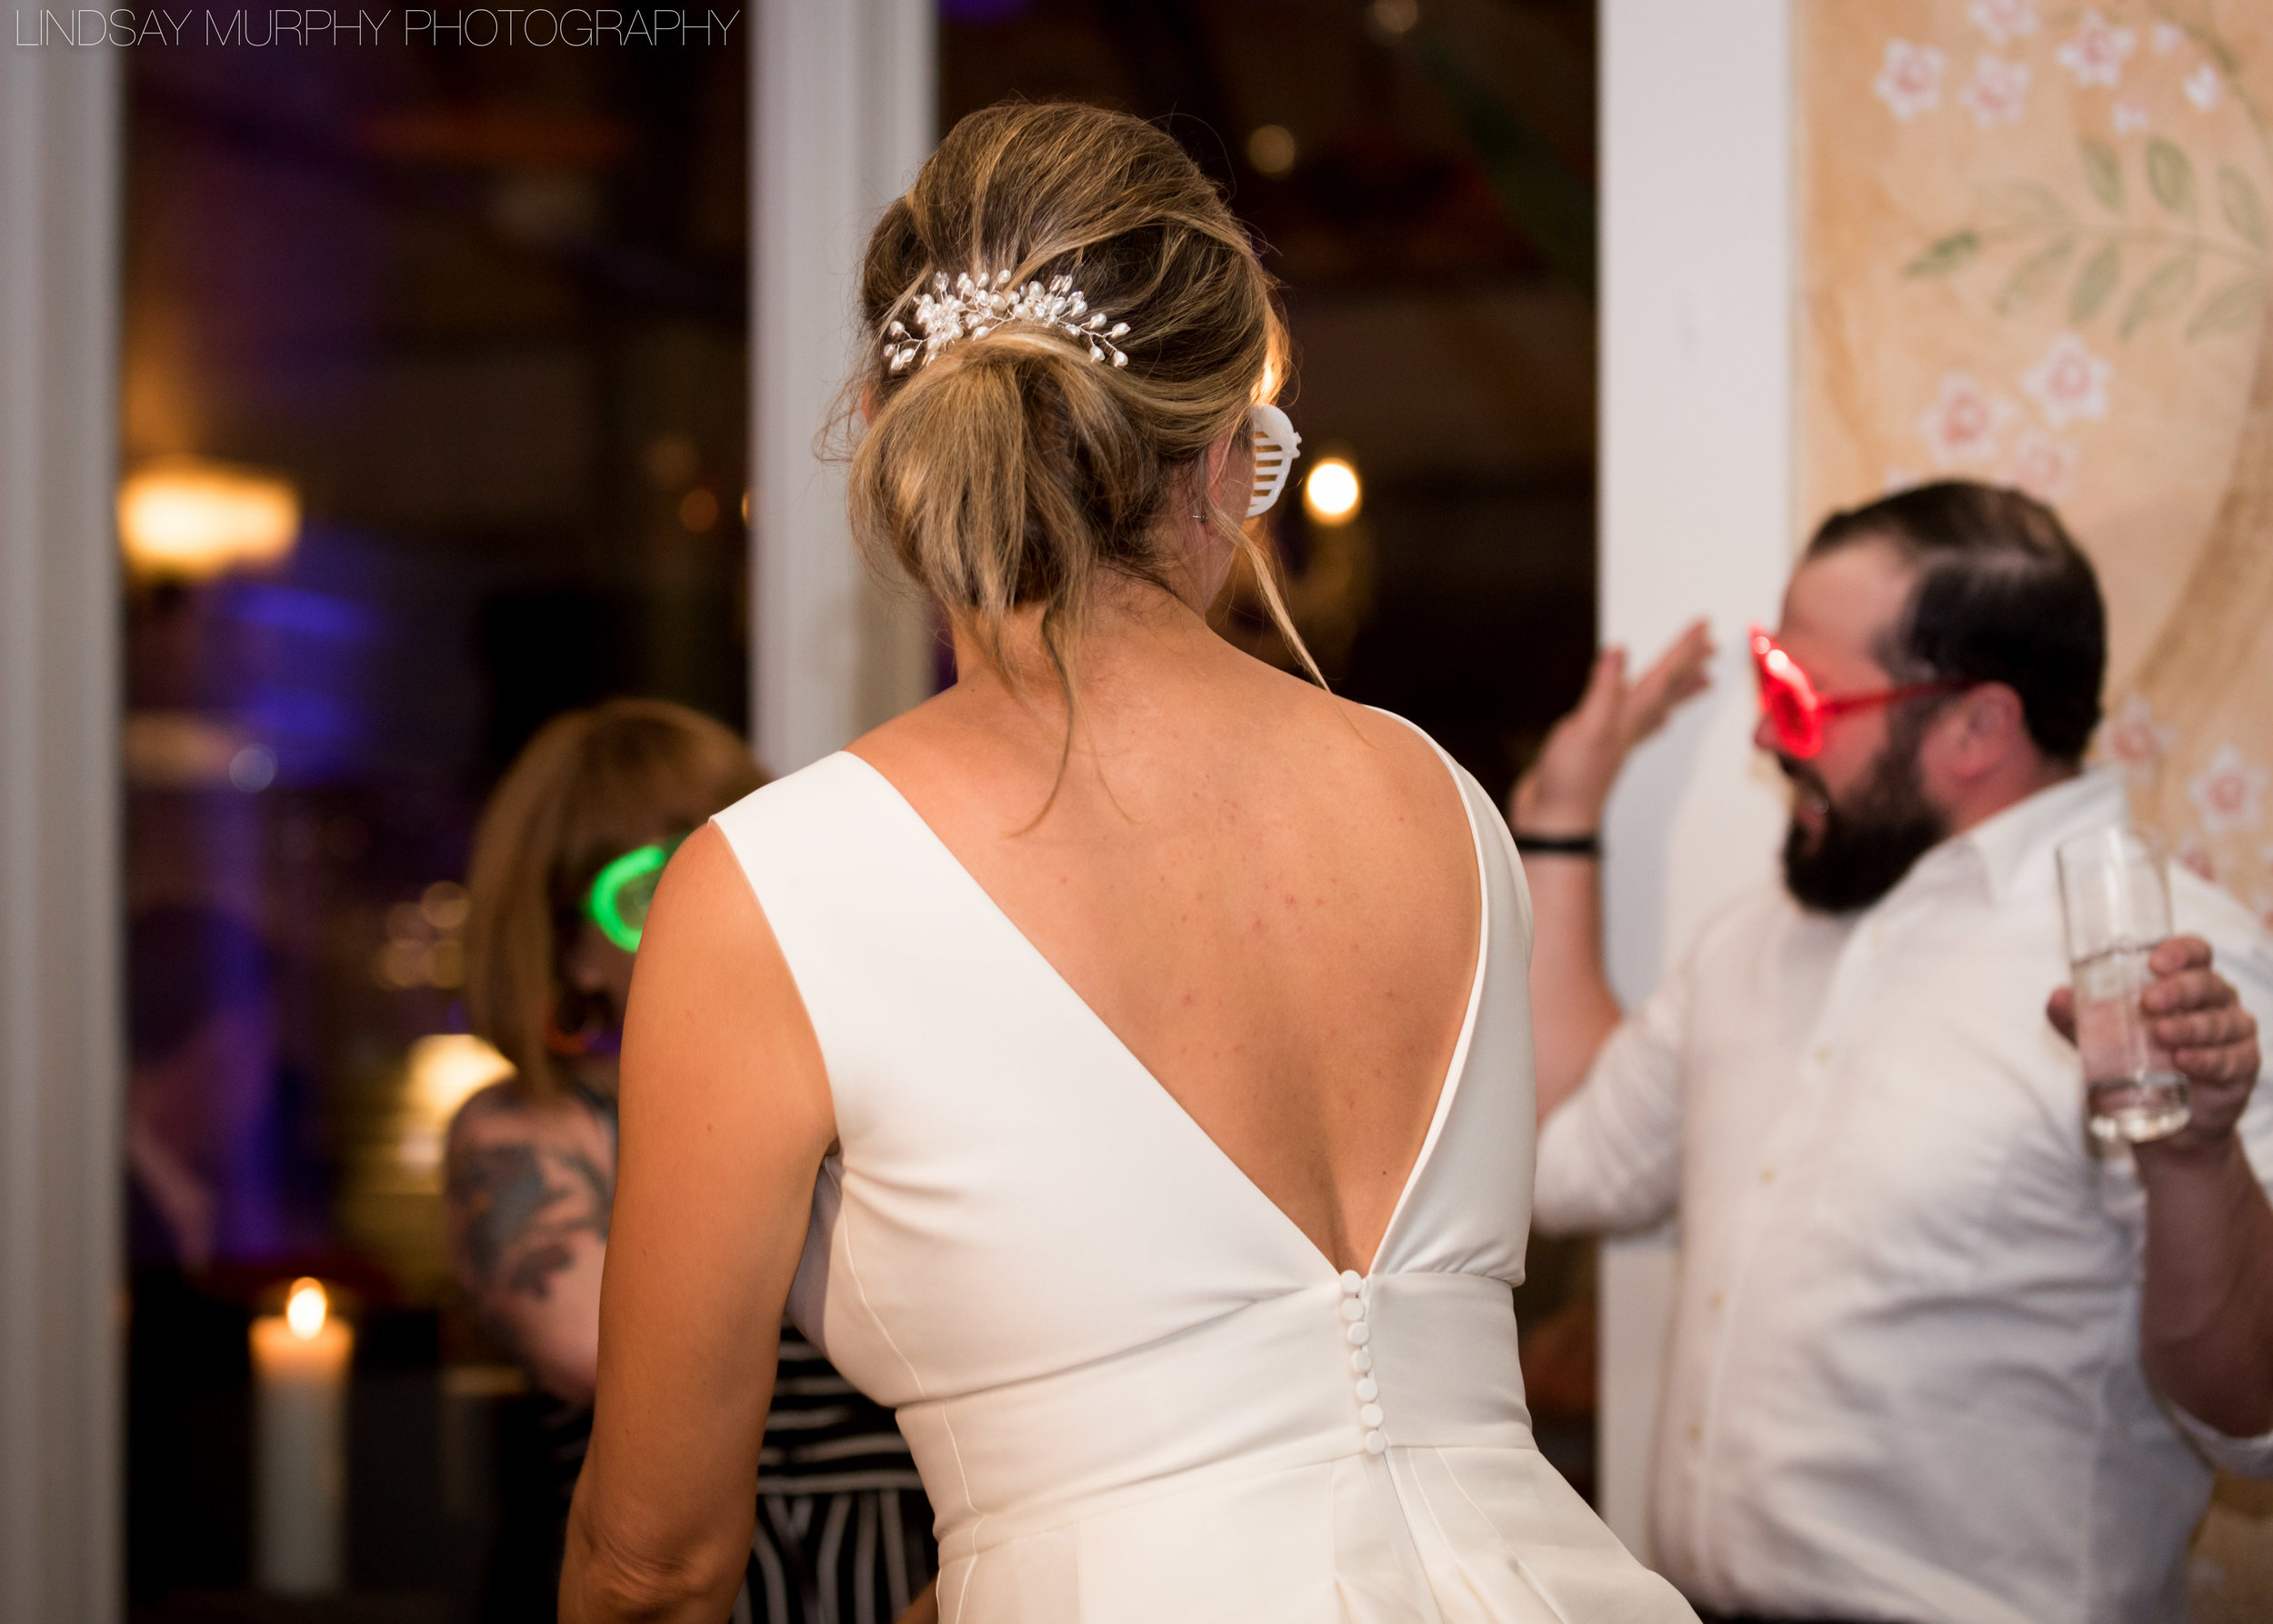 portland_wedding_photographer-742.jpg